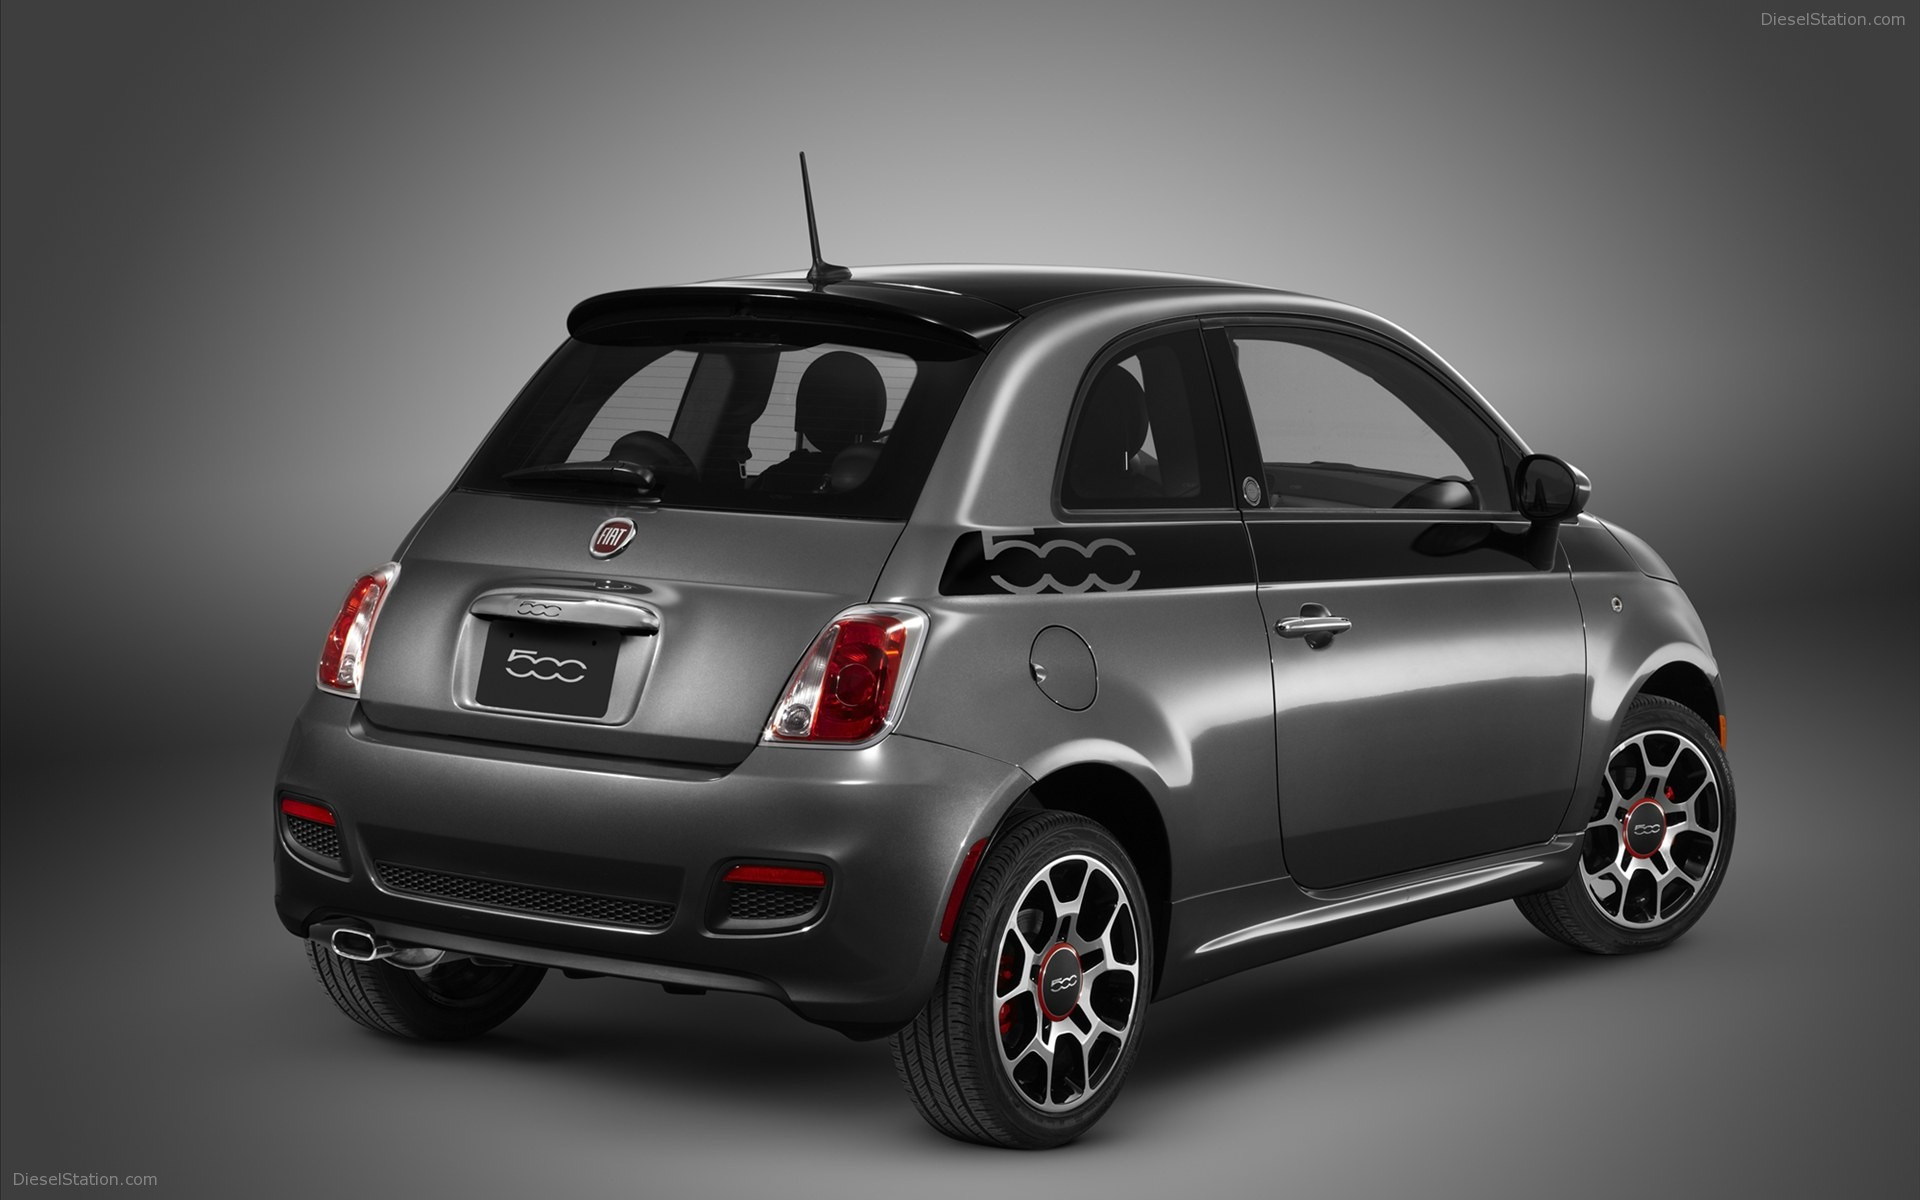 2012 fiat 500 information and photos momentcar. Black Bedroom Furniture Sets. Home Design Ideas